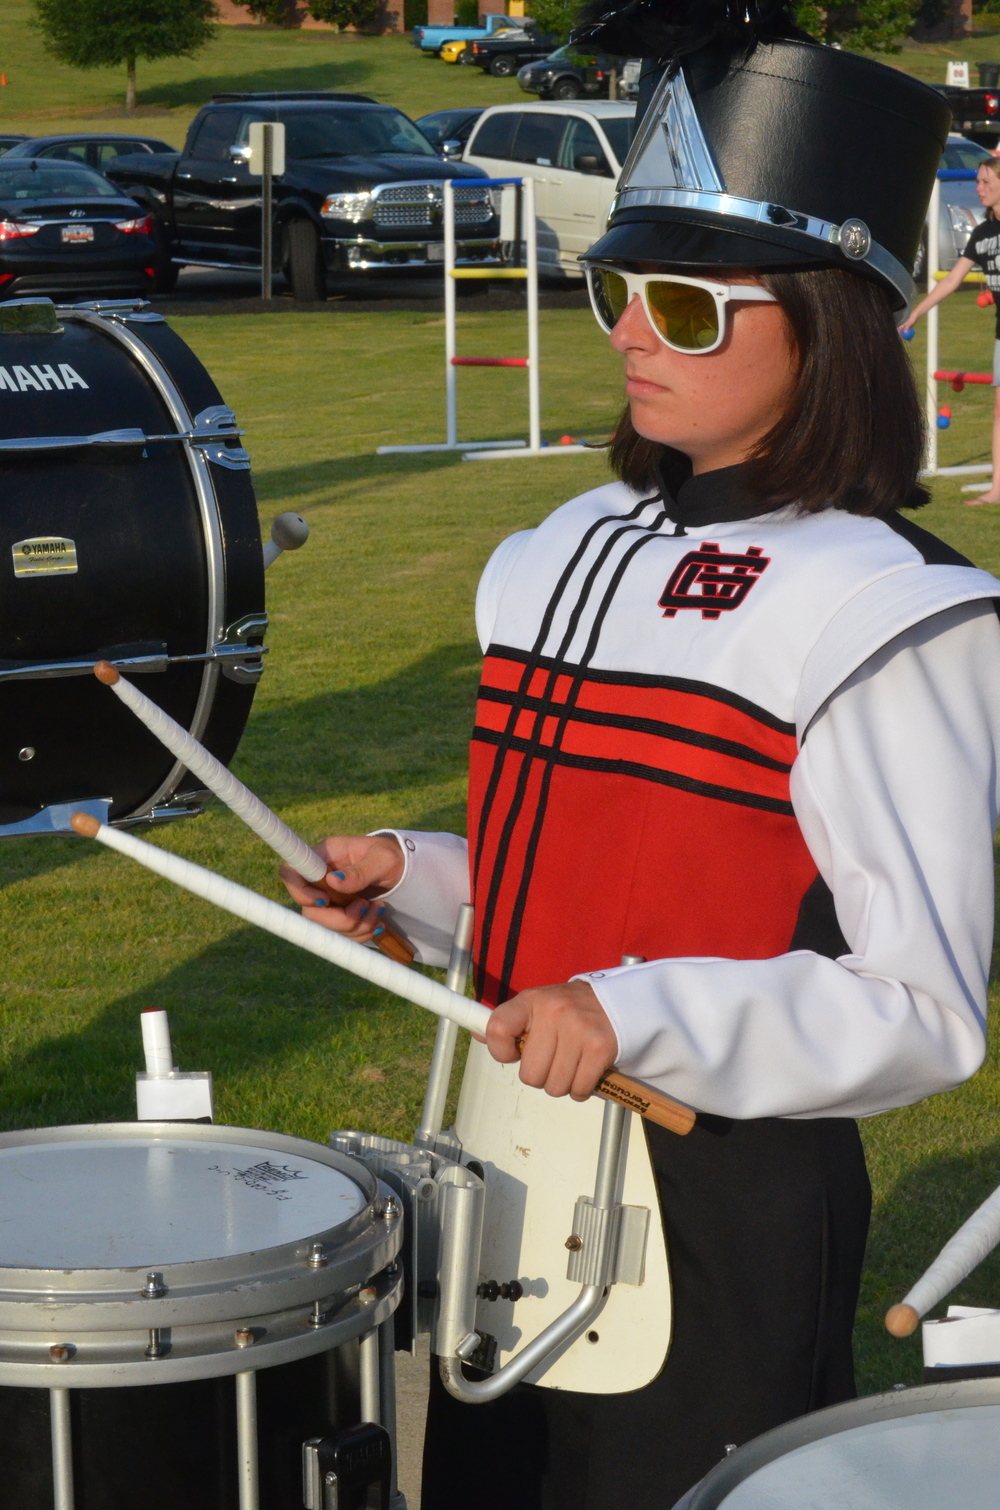 Drummer playing with the band before the start of the game